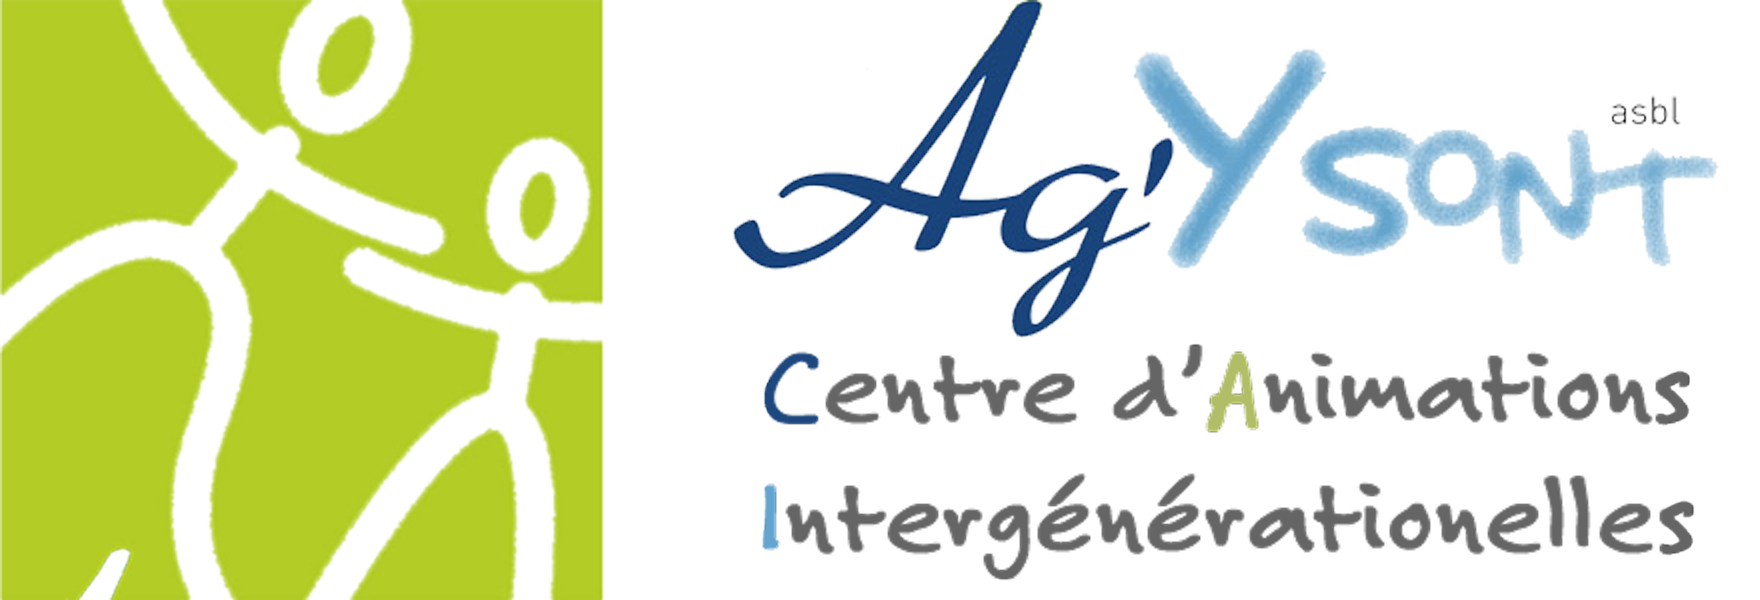 Ag 'Y Sont asbl – Centre d'animations intergénérationnelles Mobile Retina Logo